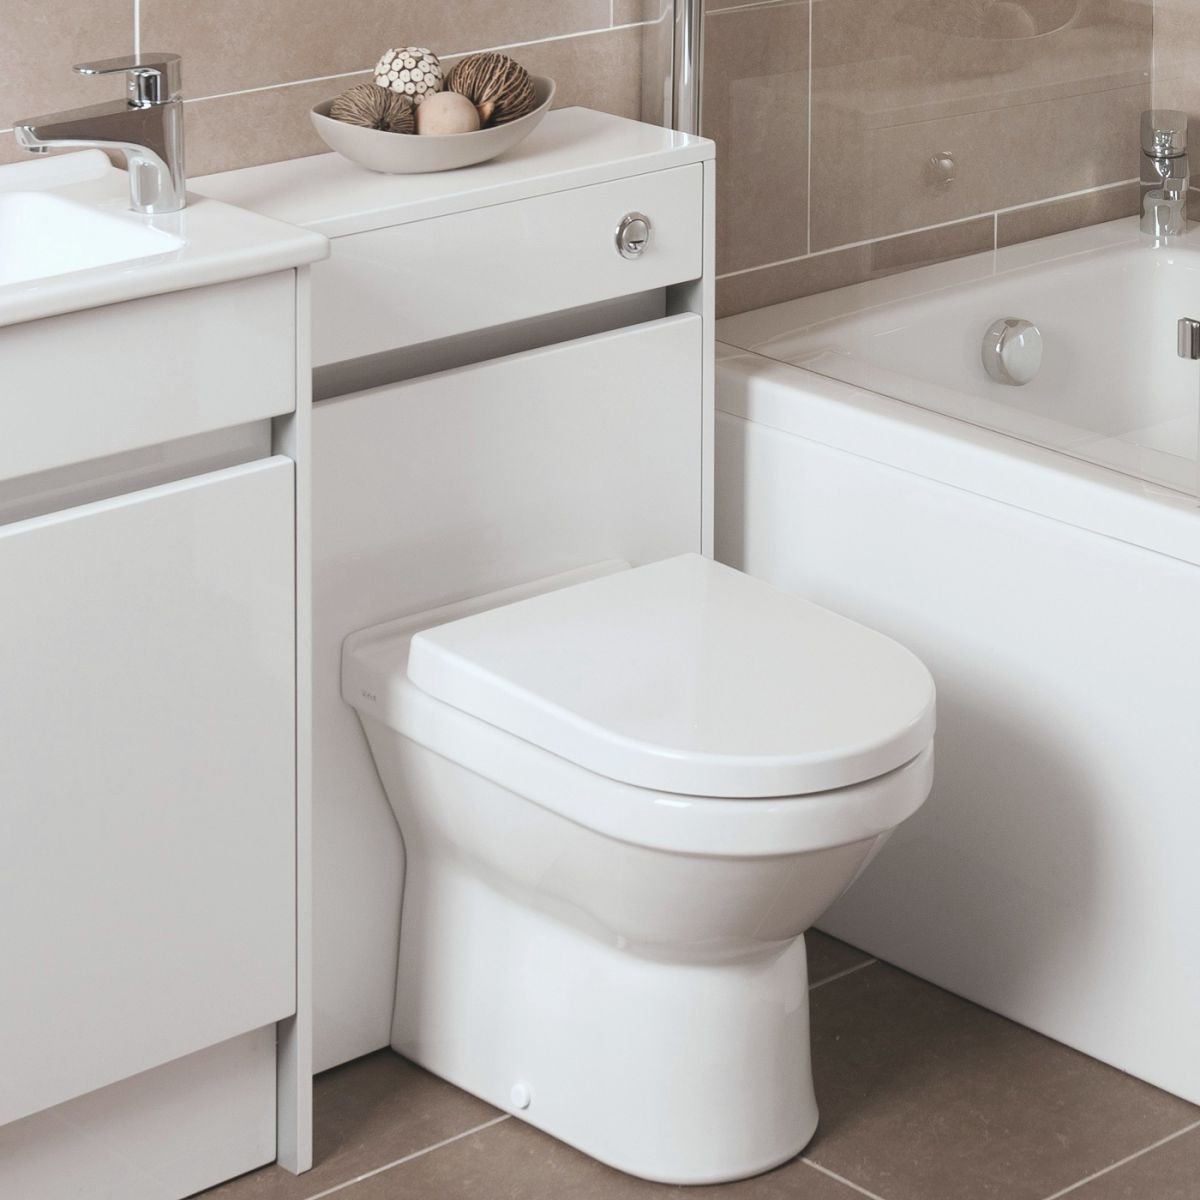 S50 WC Unit - blueskybathrooms